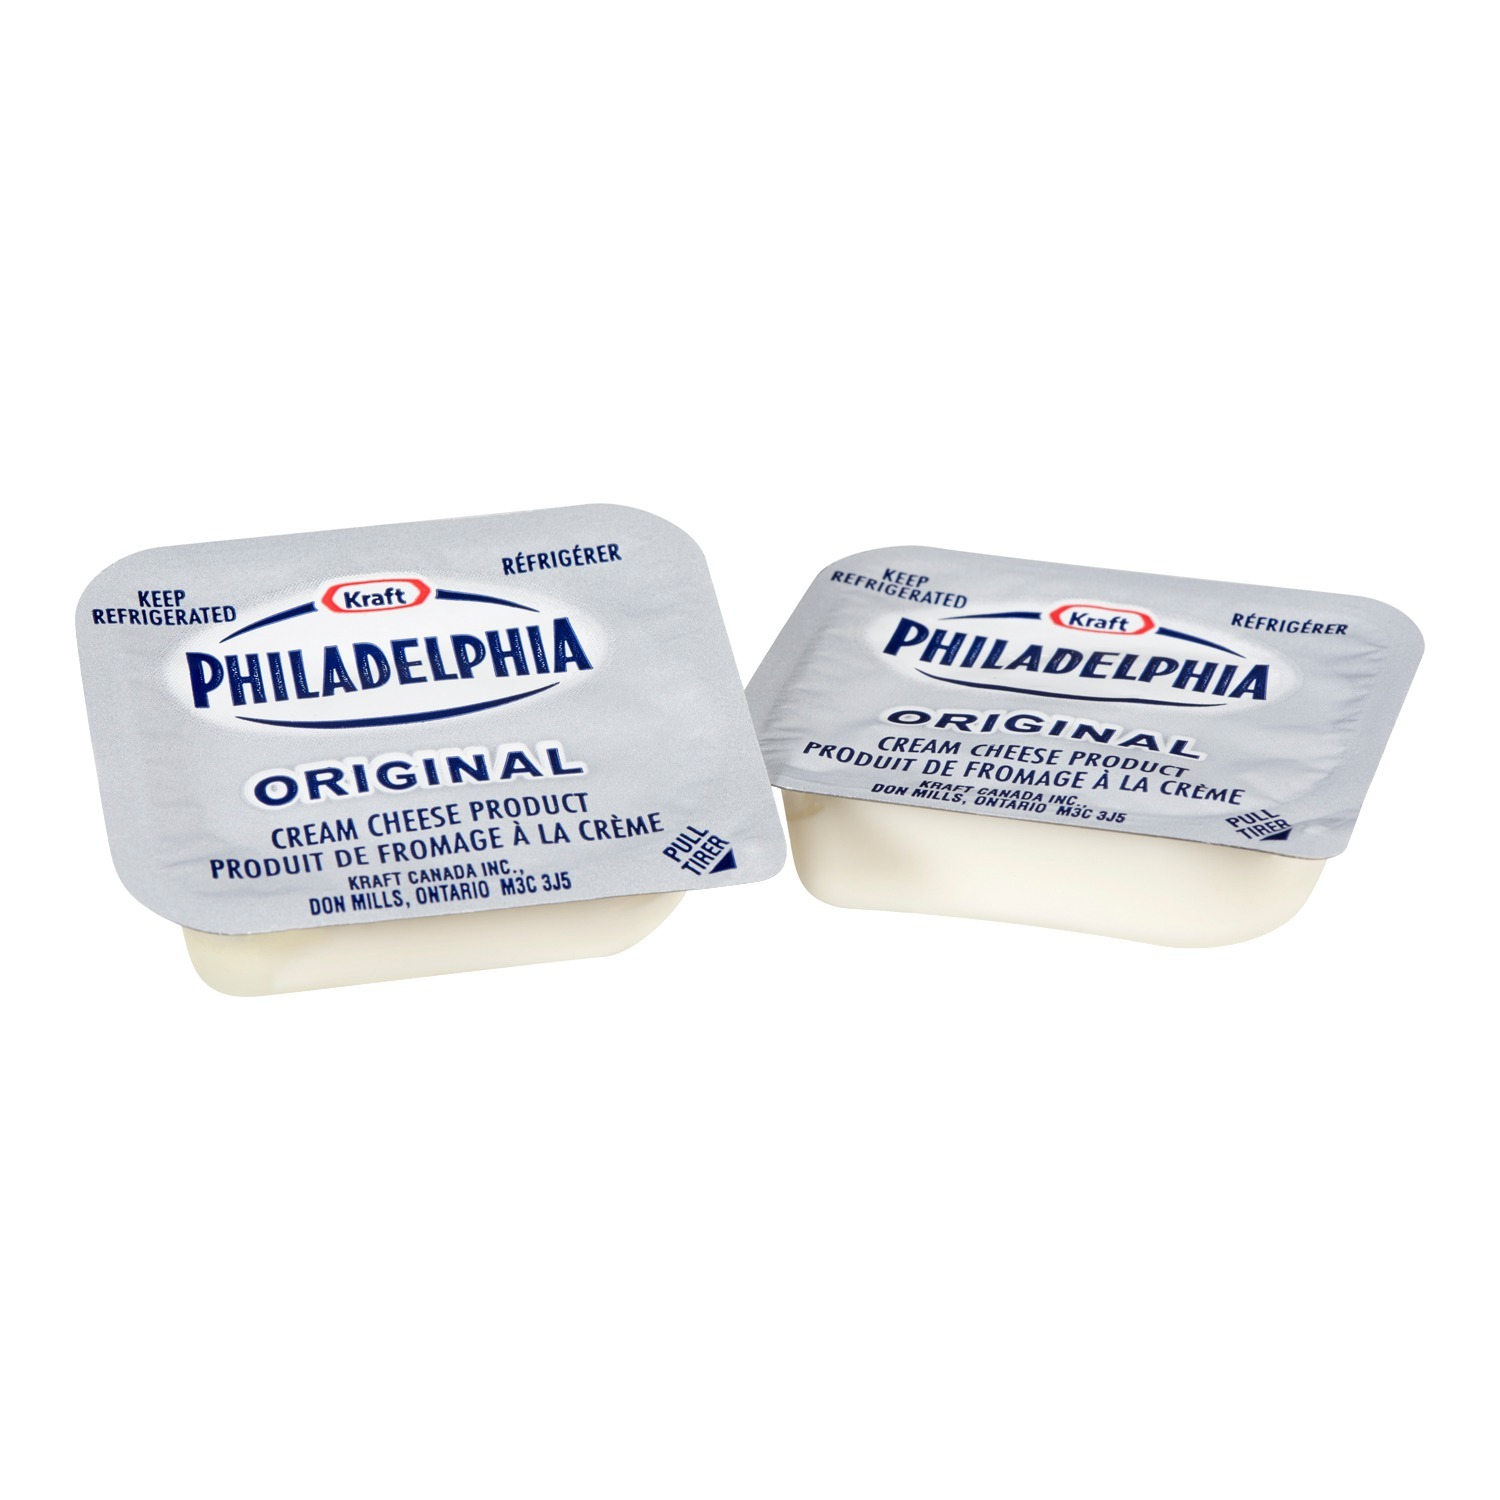 PHILADELPHIA Cream Cheese Original 18g 200